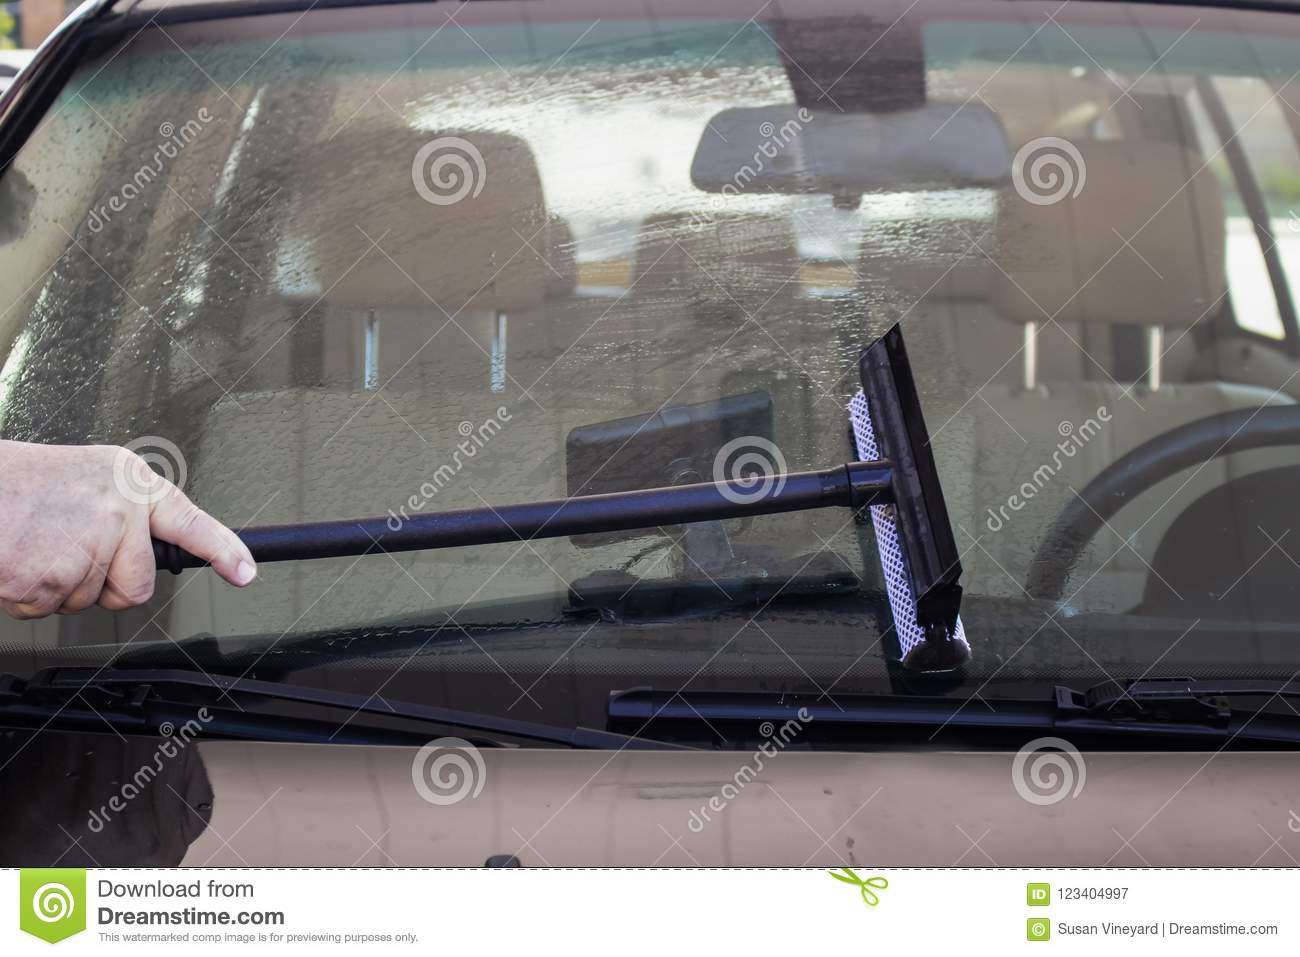 Close-up of man using squeegee to clean the windshield of a car with a GPS visable inside on dash